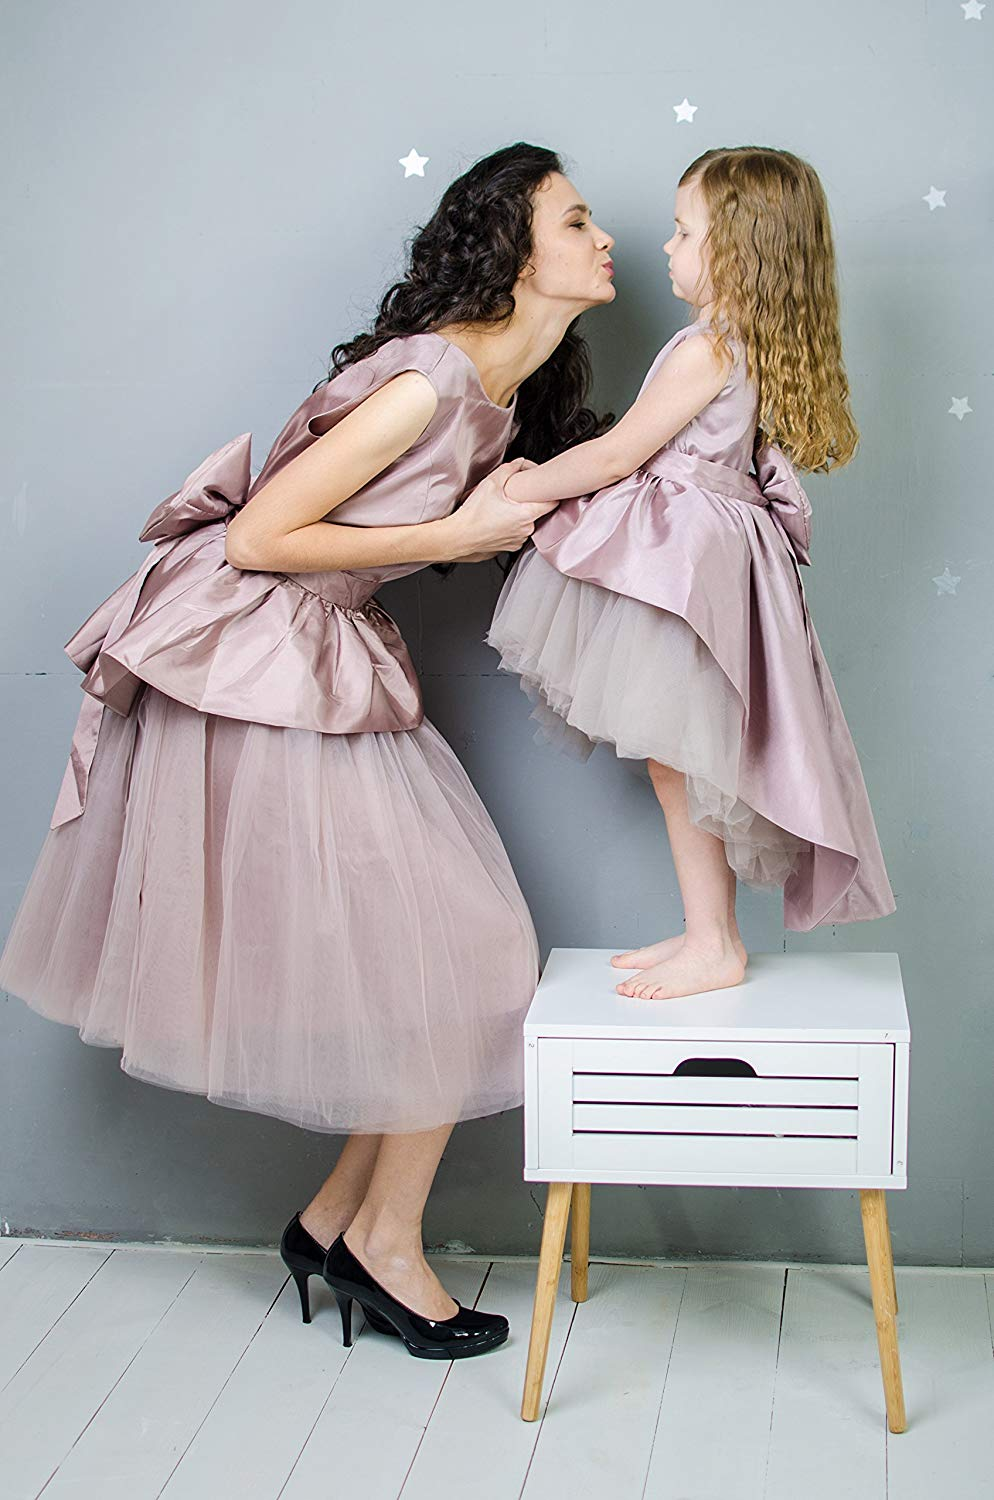 c52a35cbf6 Get Quotations · Matching Party Dresses Mother Daughter Matching Dress  Outfits Mommy and Me Formal Dresses Taffeta and Tulle